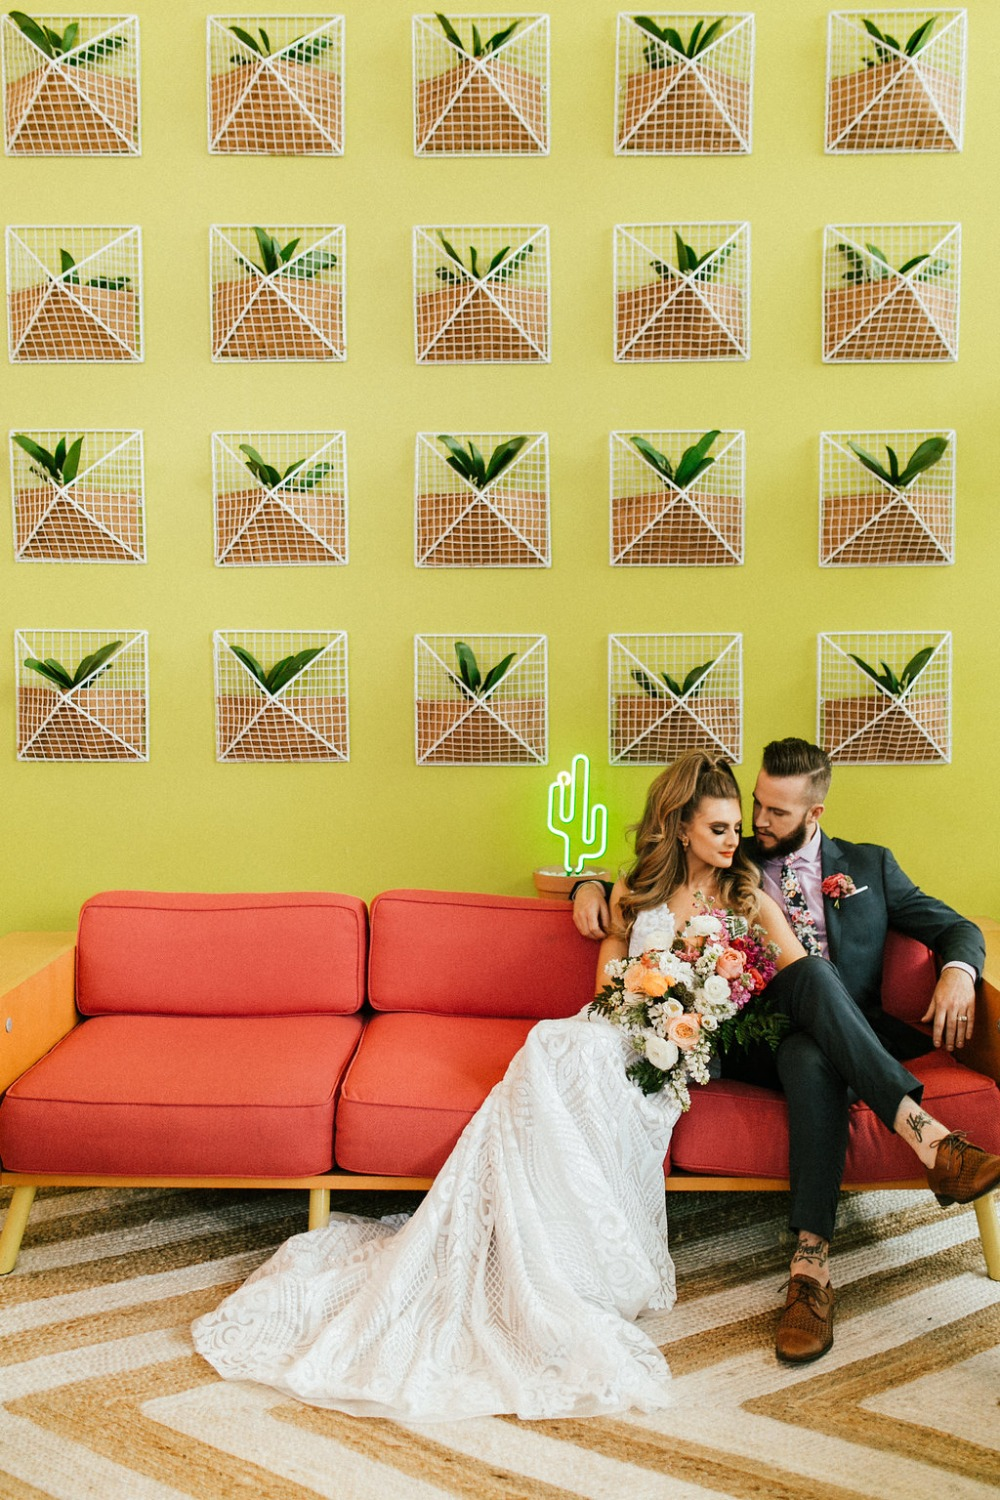 You'll Be Walkin On Sunshine With This Cactus Themed Wedding